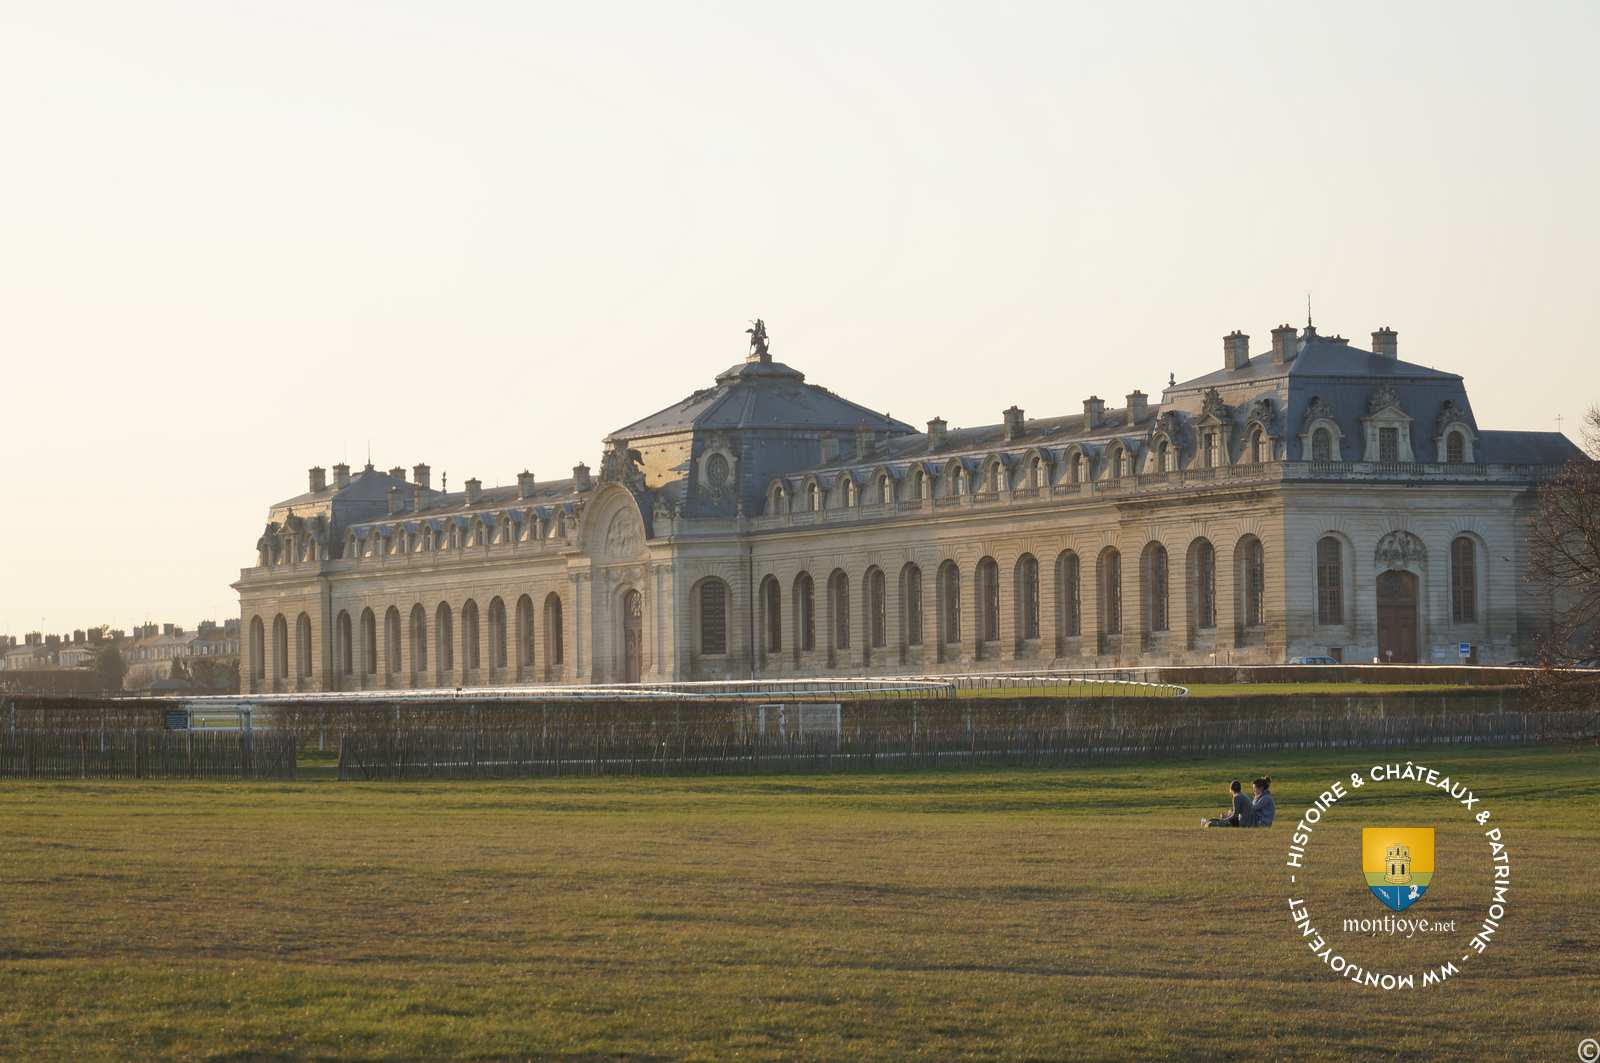 Ecurie de Chantilly, Course Hippique, Hippodrome